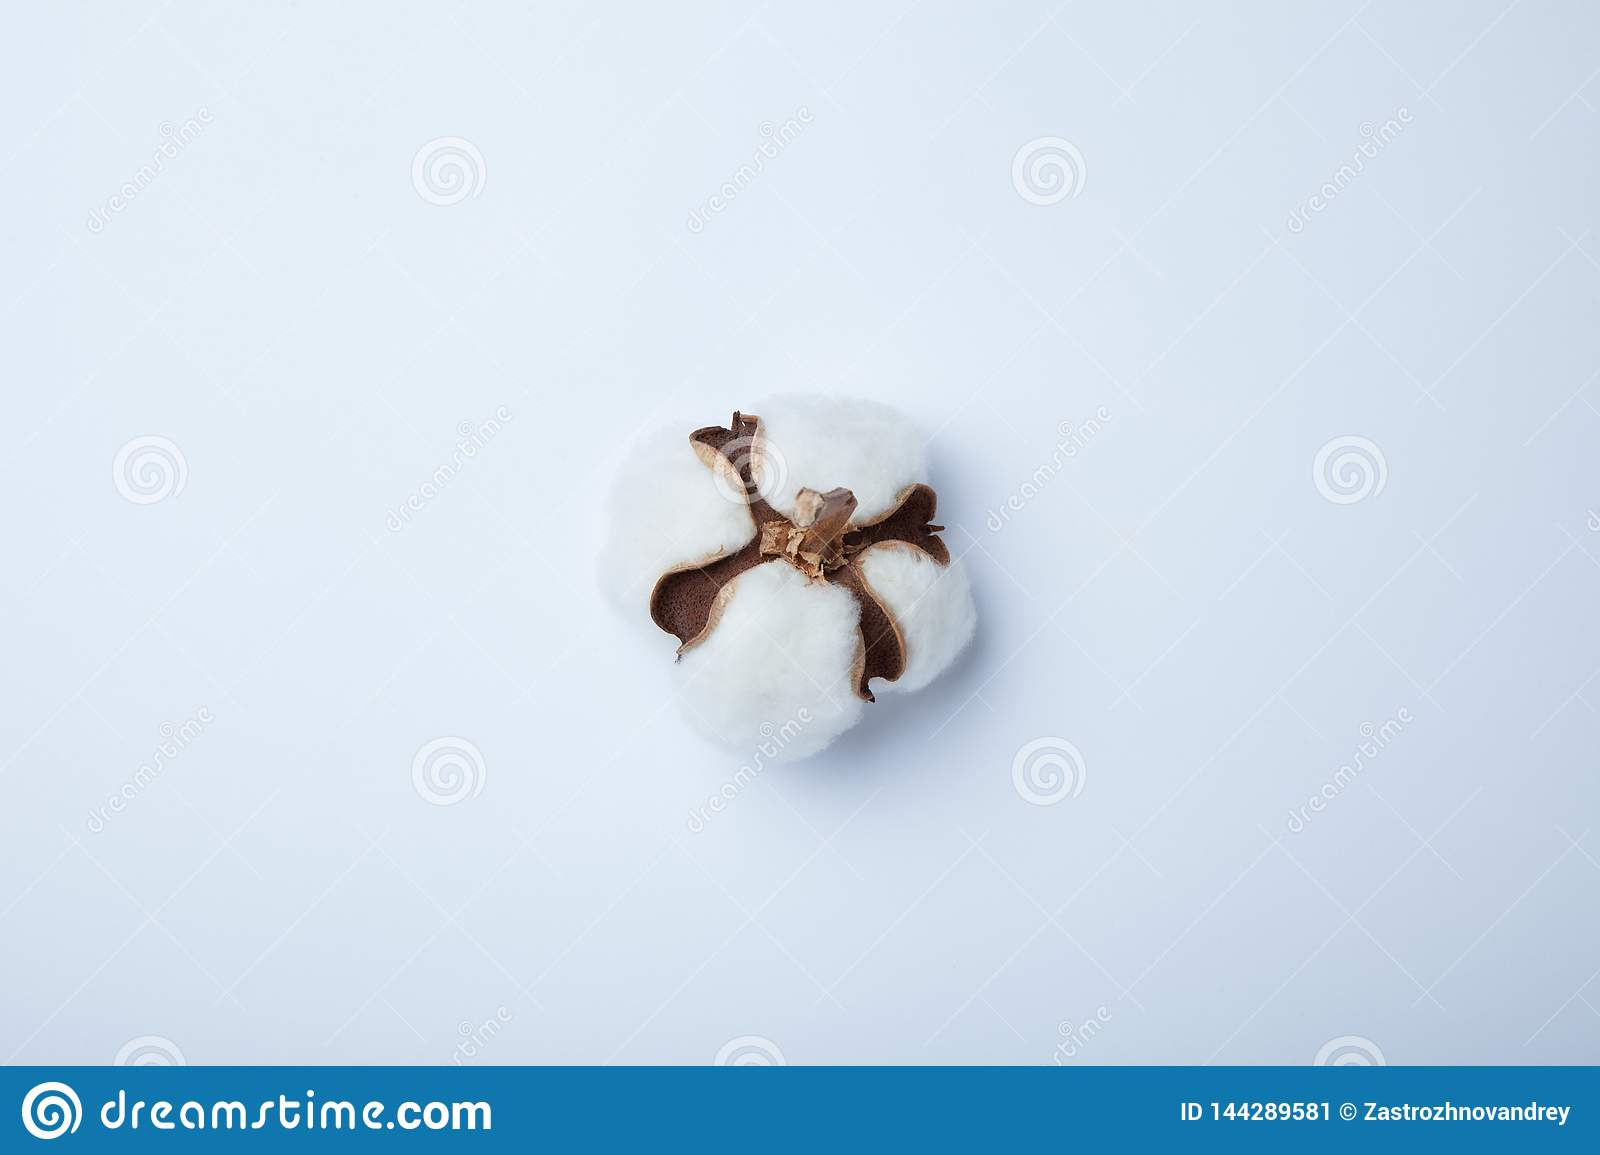 Сotton flower on white background. Flat lay, top view